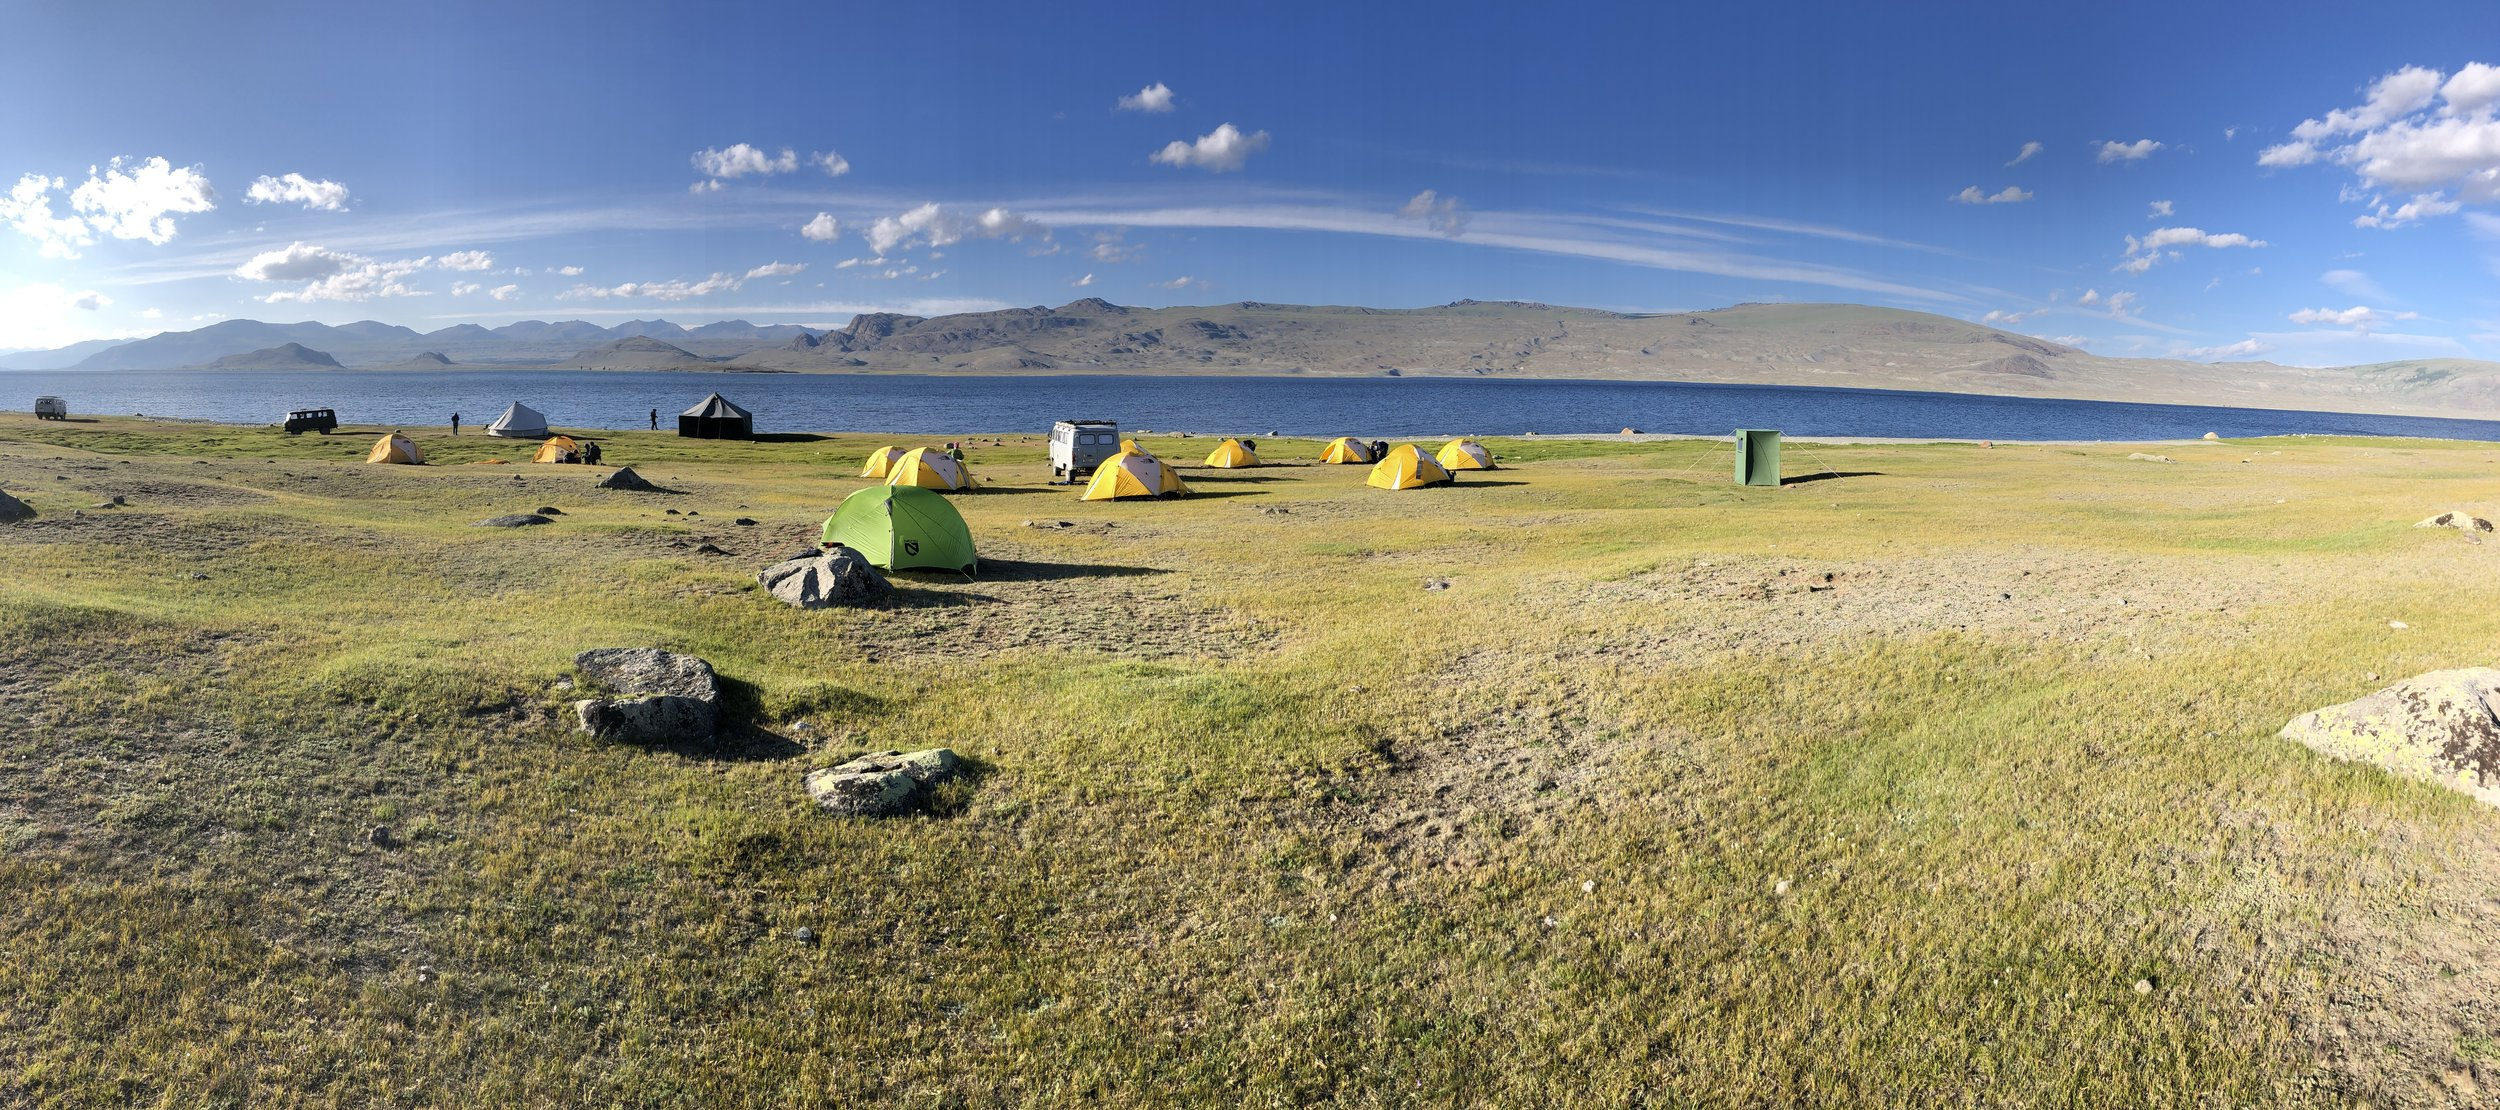 Camping on the south-western banks of Khoton Lake in the Tavan Bogd National Park - July 2019.